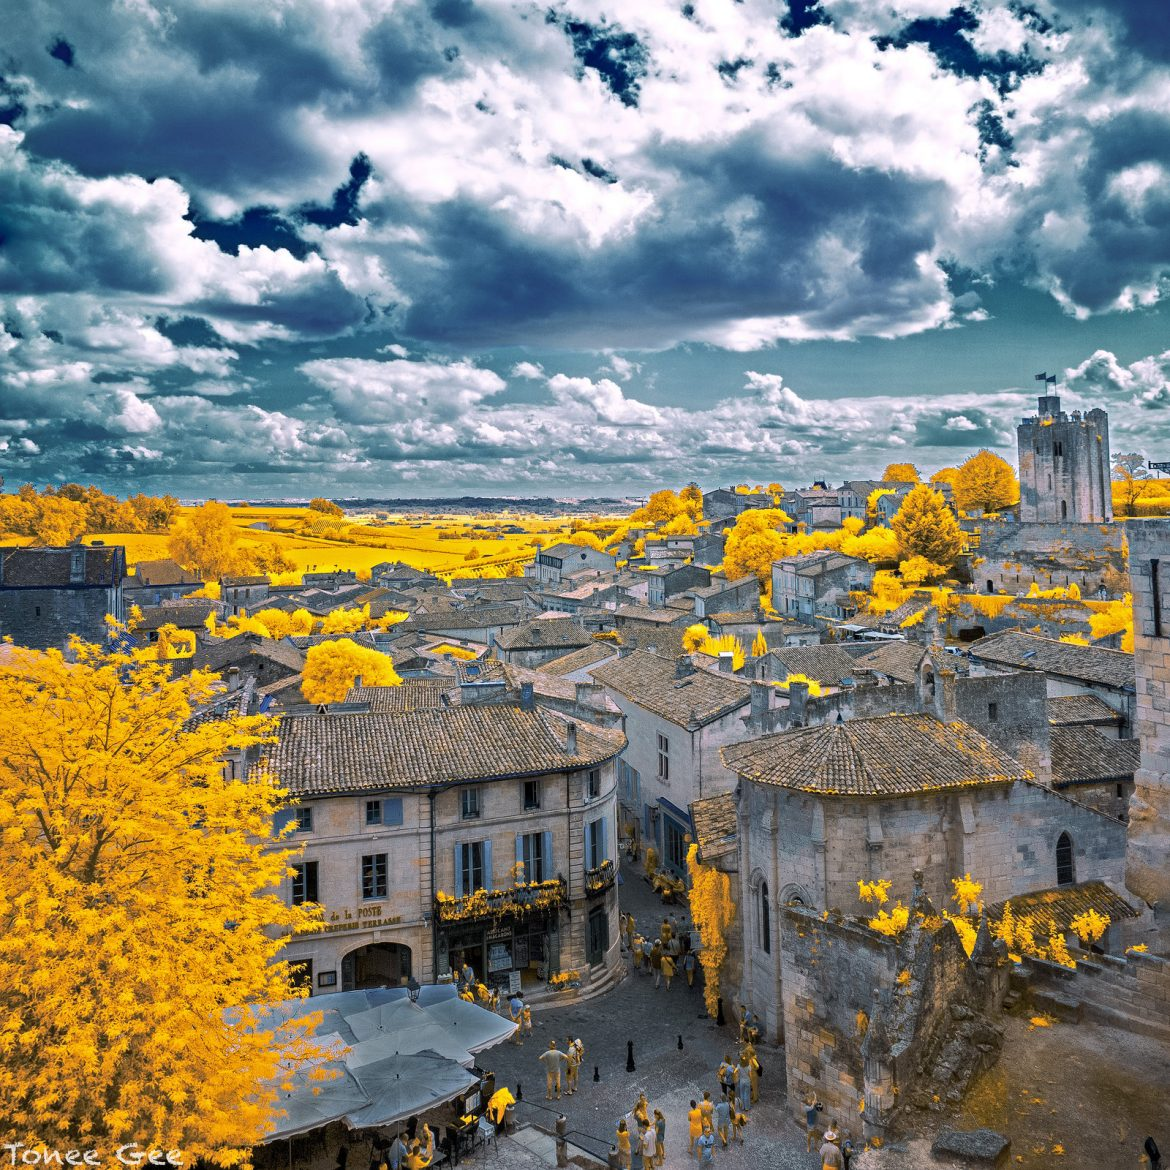 saint_emilion__france__infrared__by_toneegee-d8fliqo.jpg